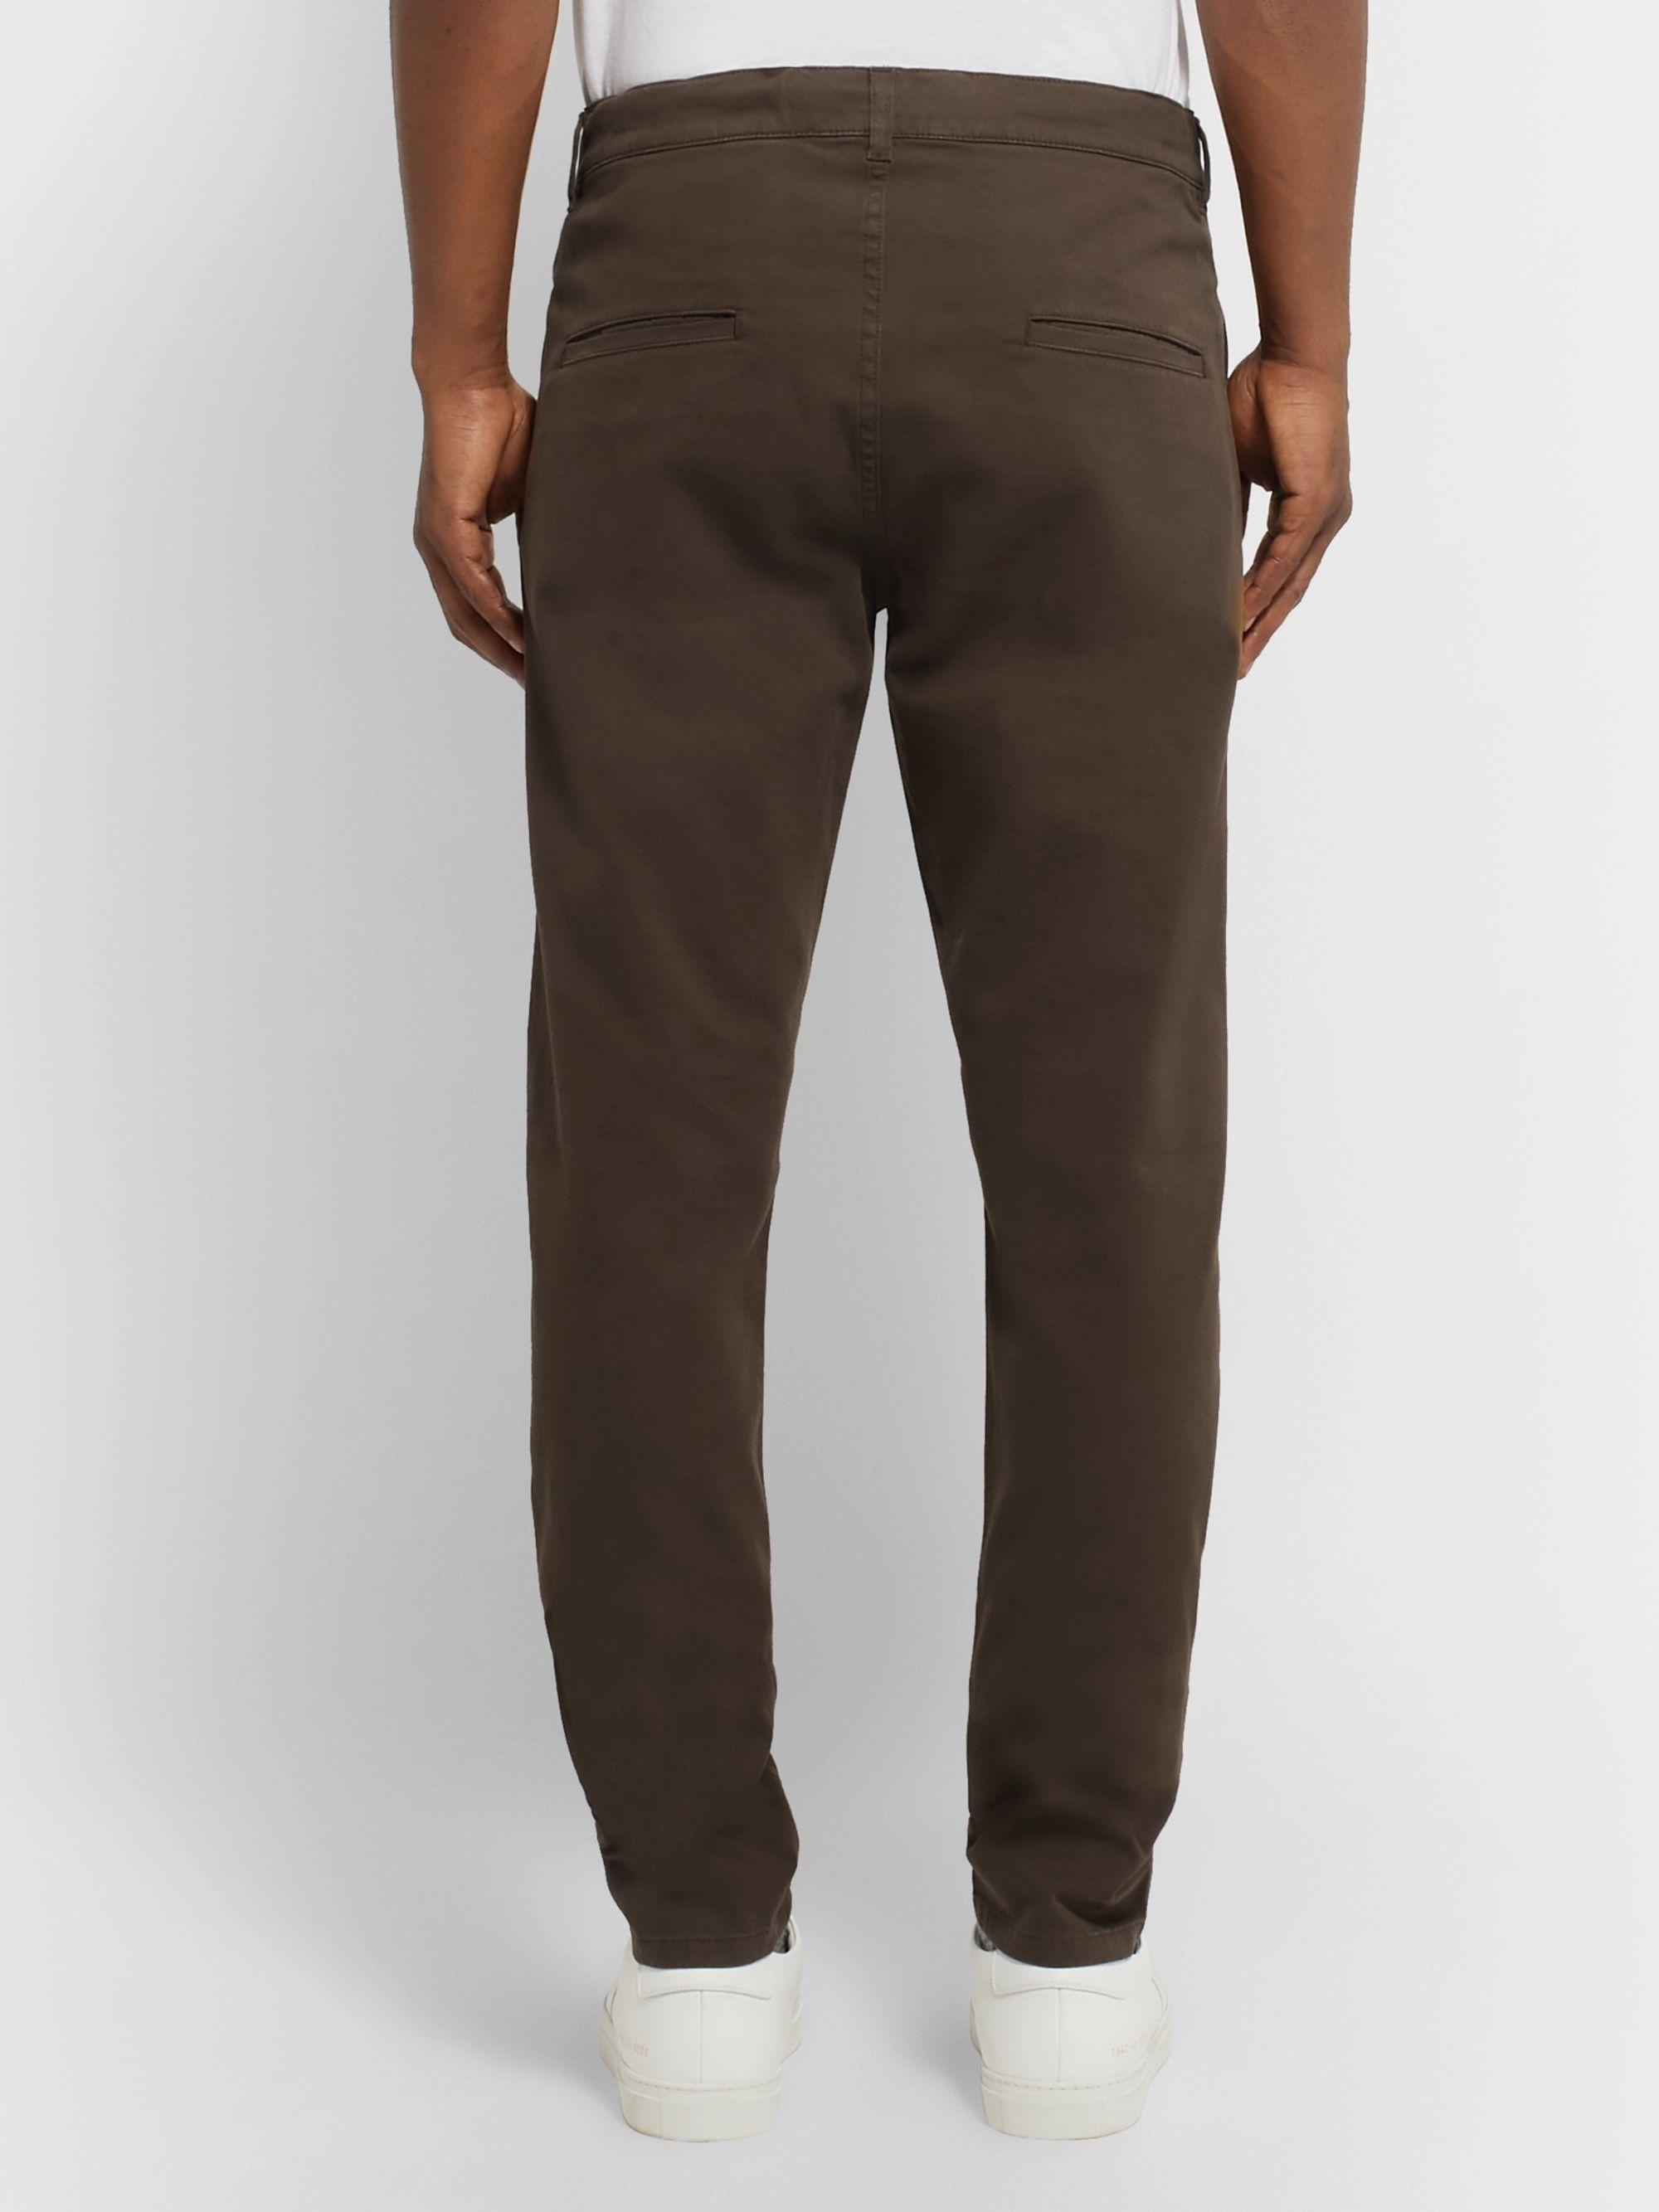 Aspesi Slim-Fit Garment-Dyed Cotton-Blend Twill Trousers